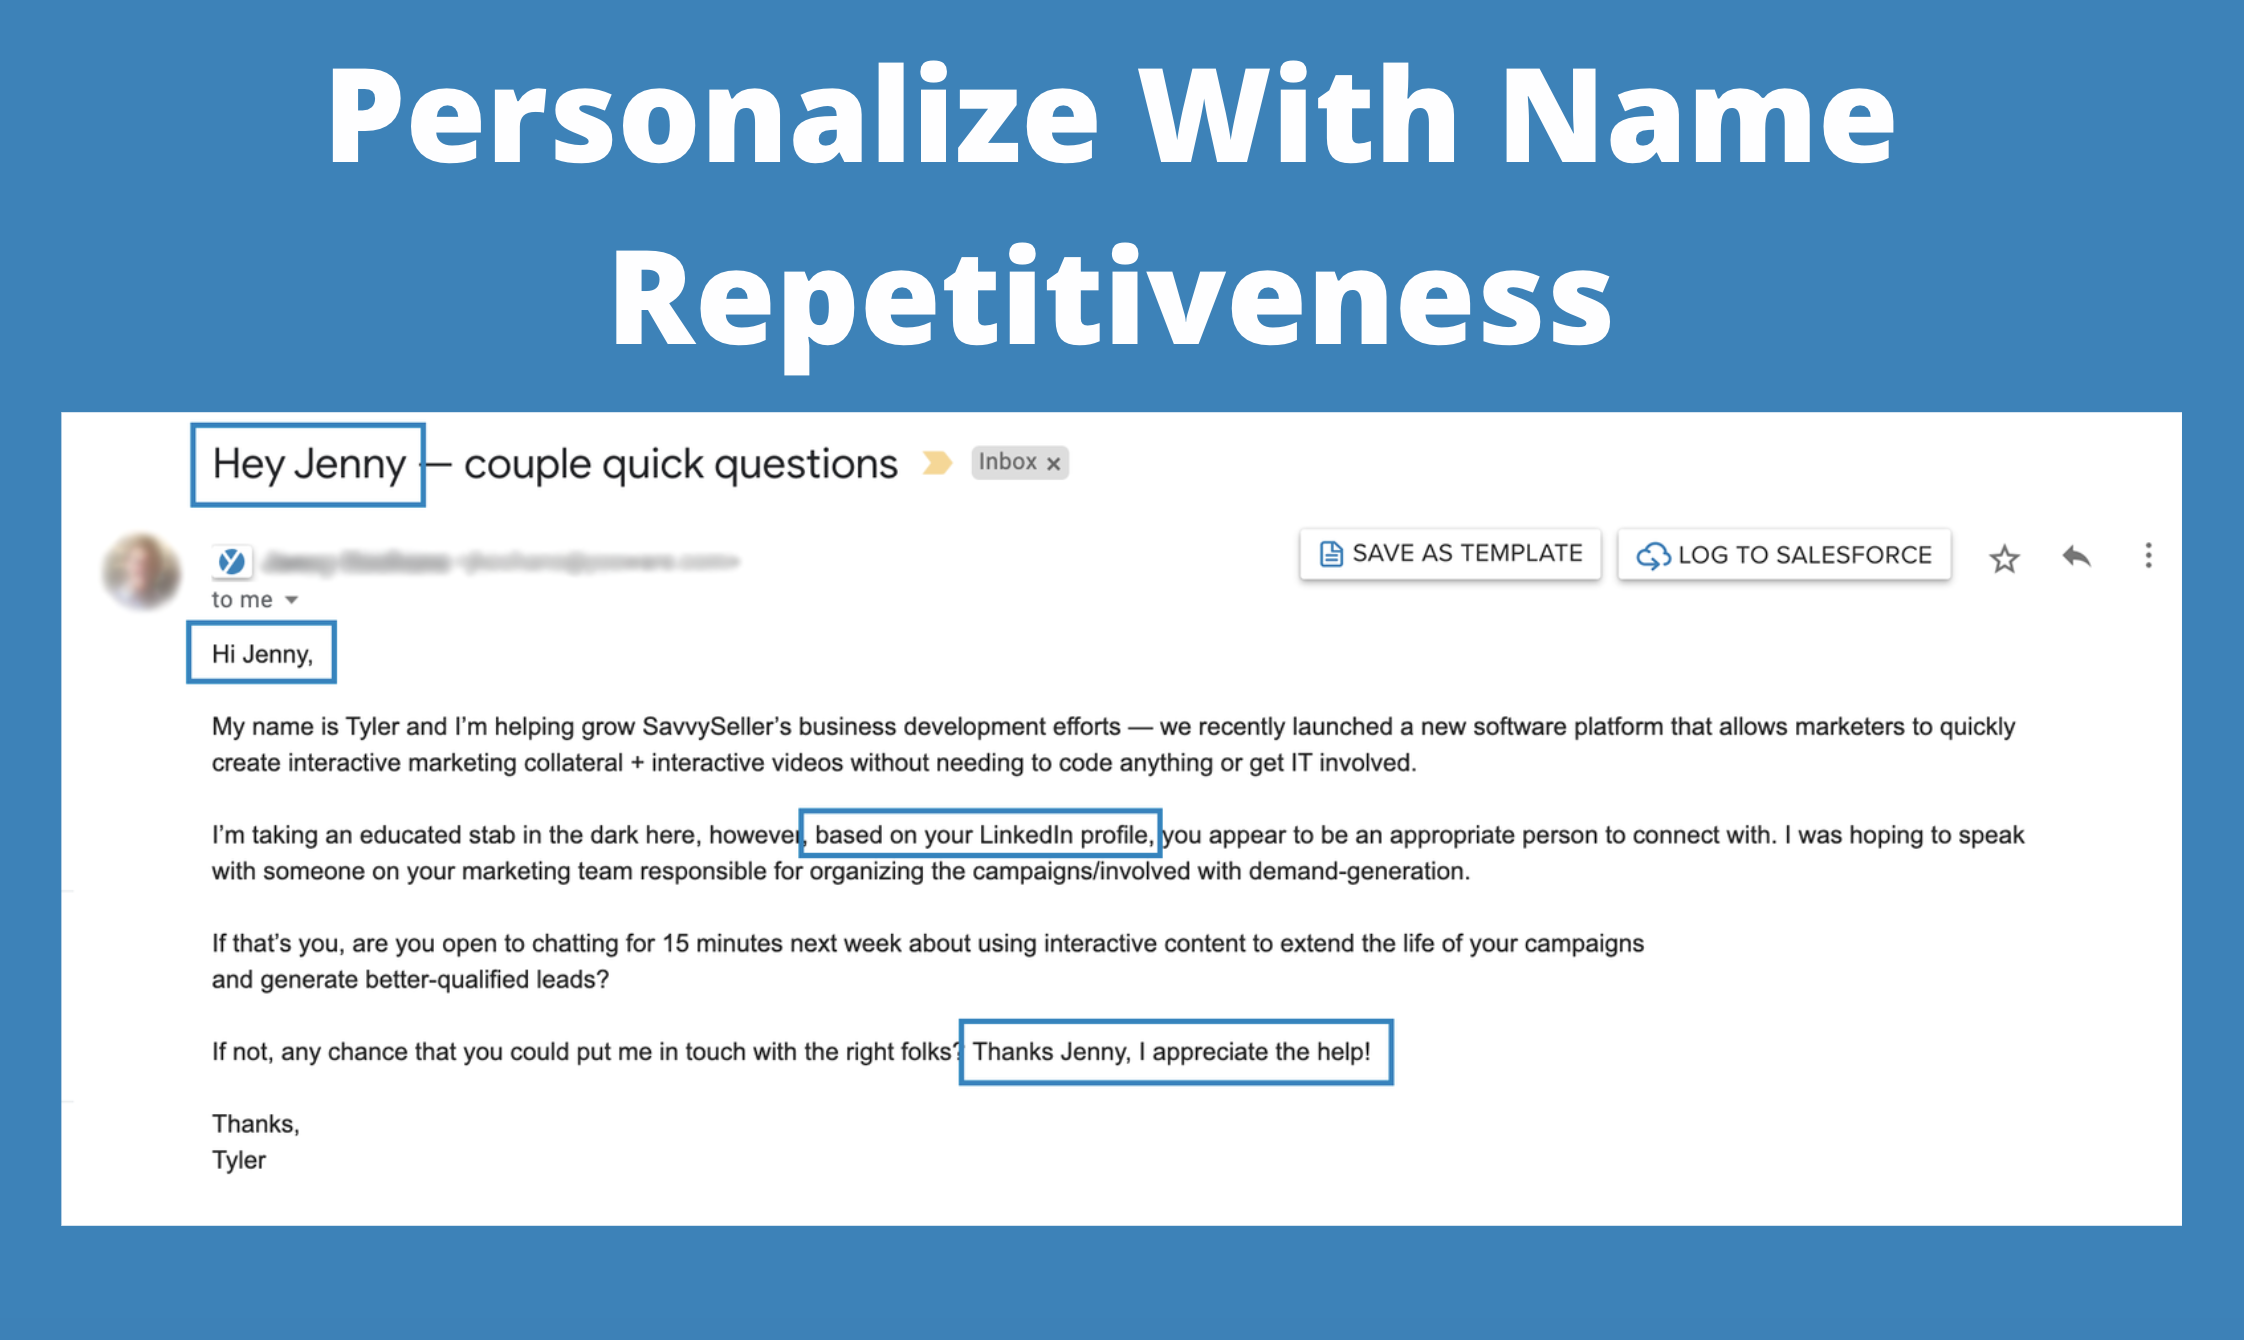 personalized emails: personalize with name repetitiveness